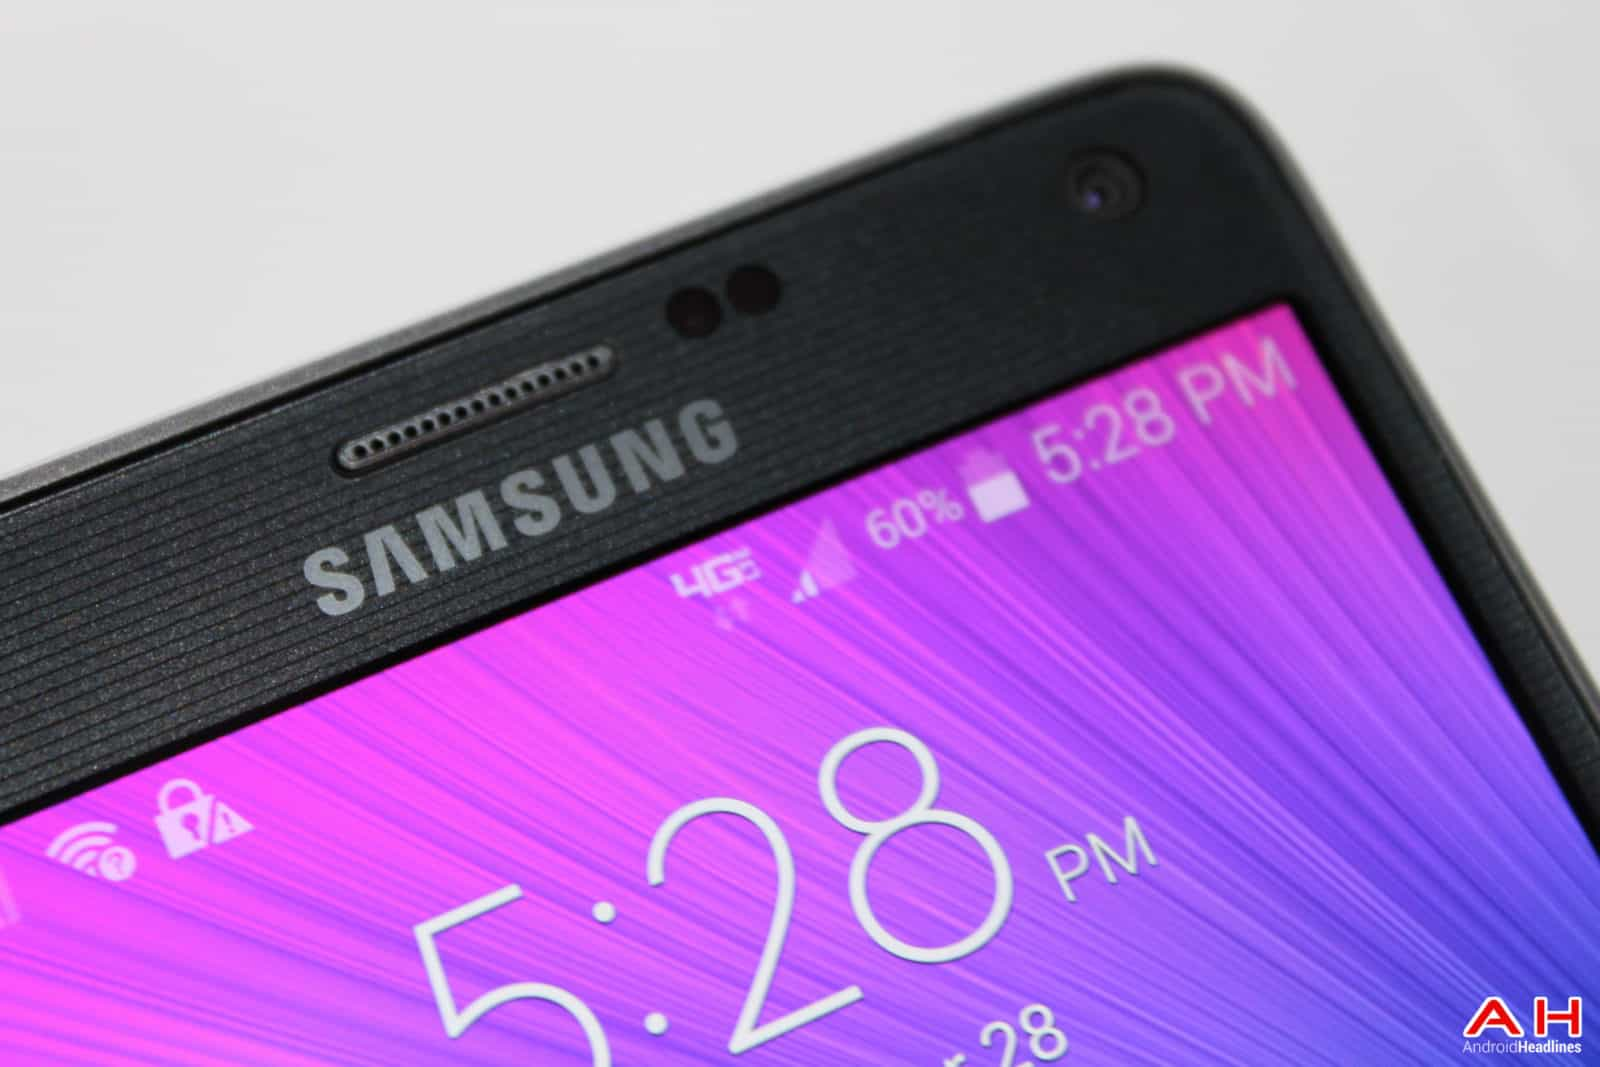 AH Samsung Galaxy Note 4-41